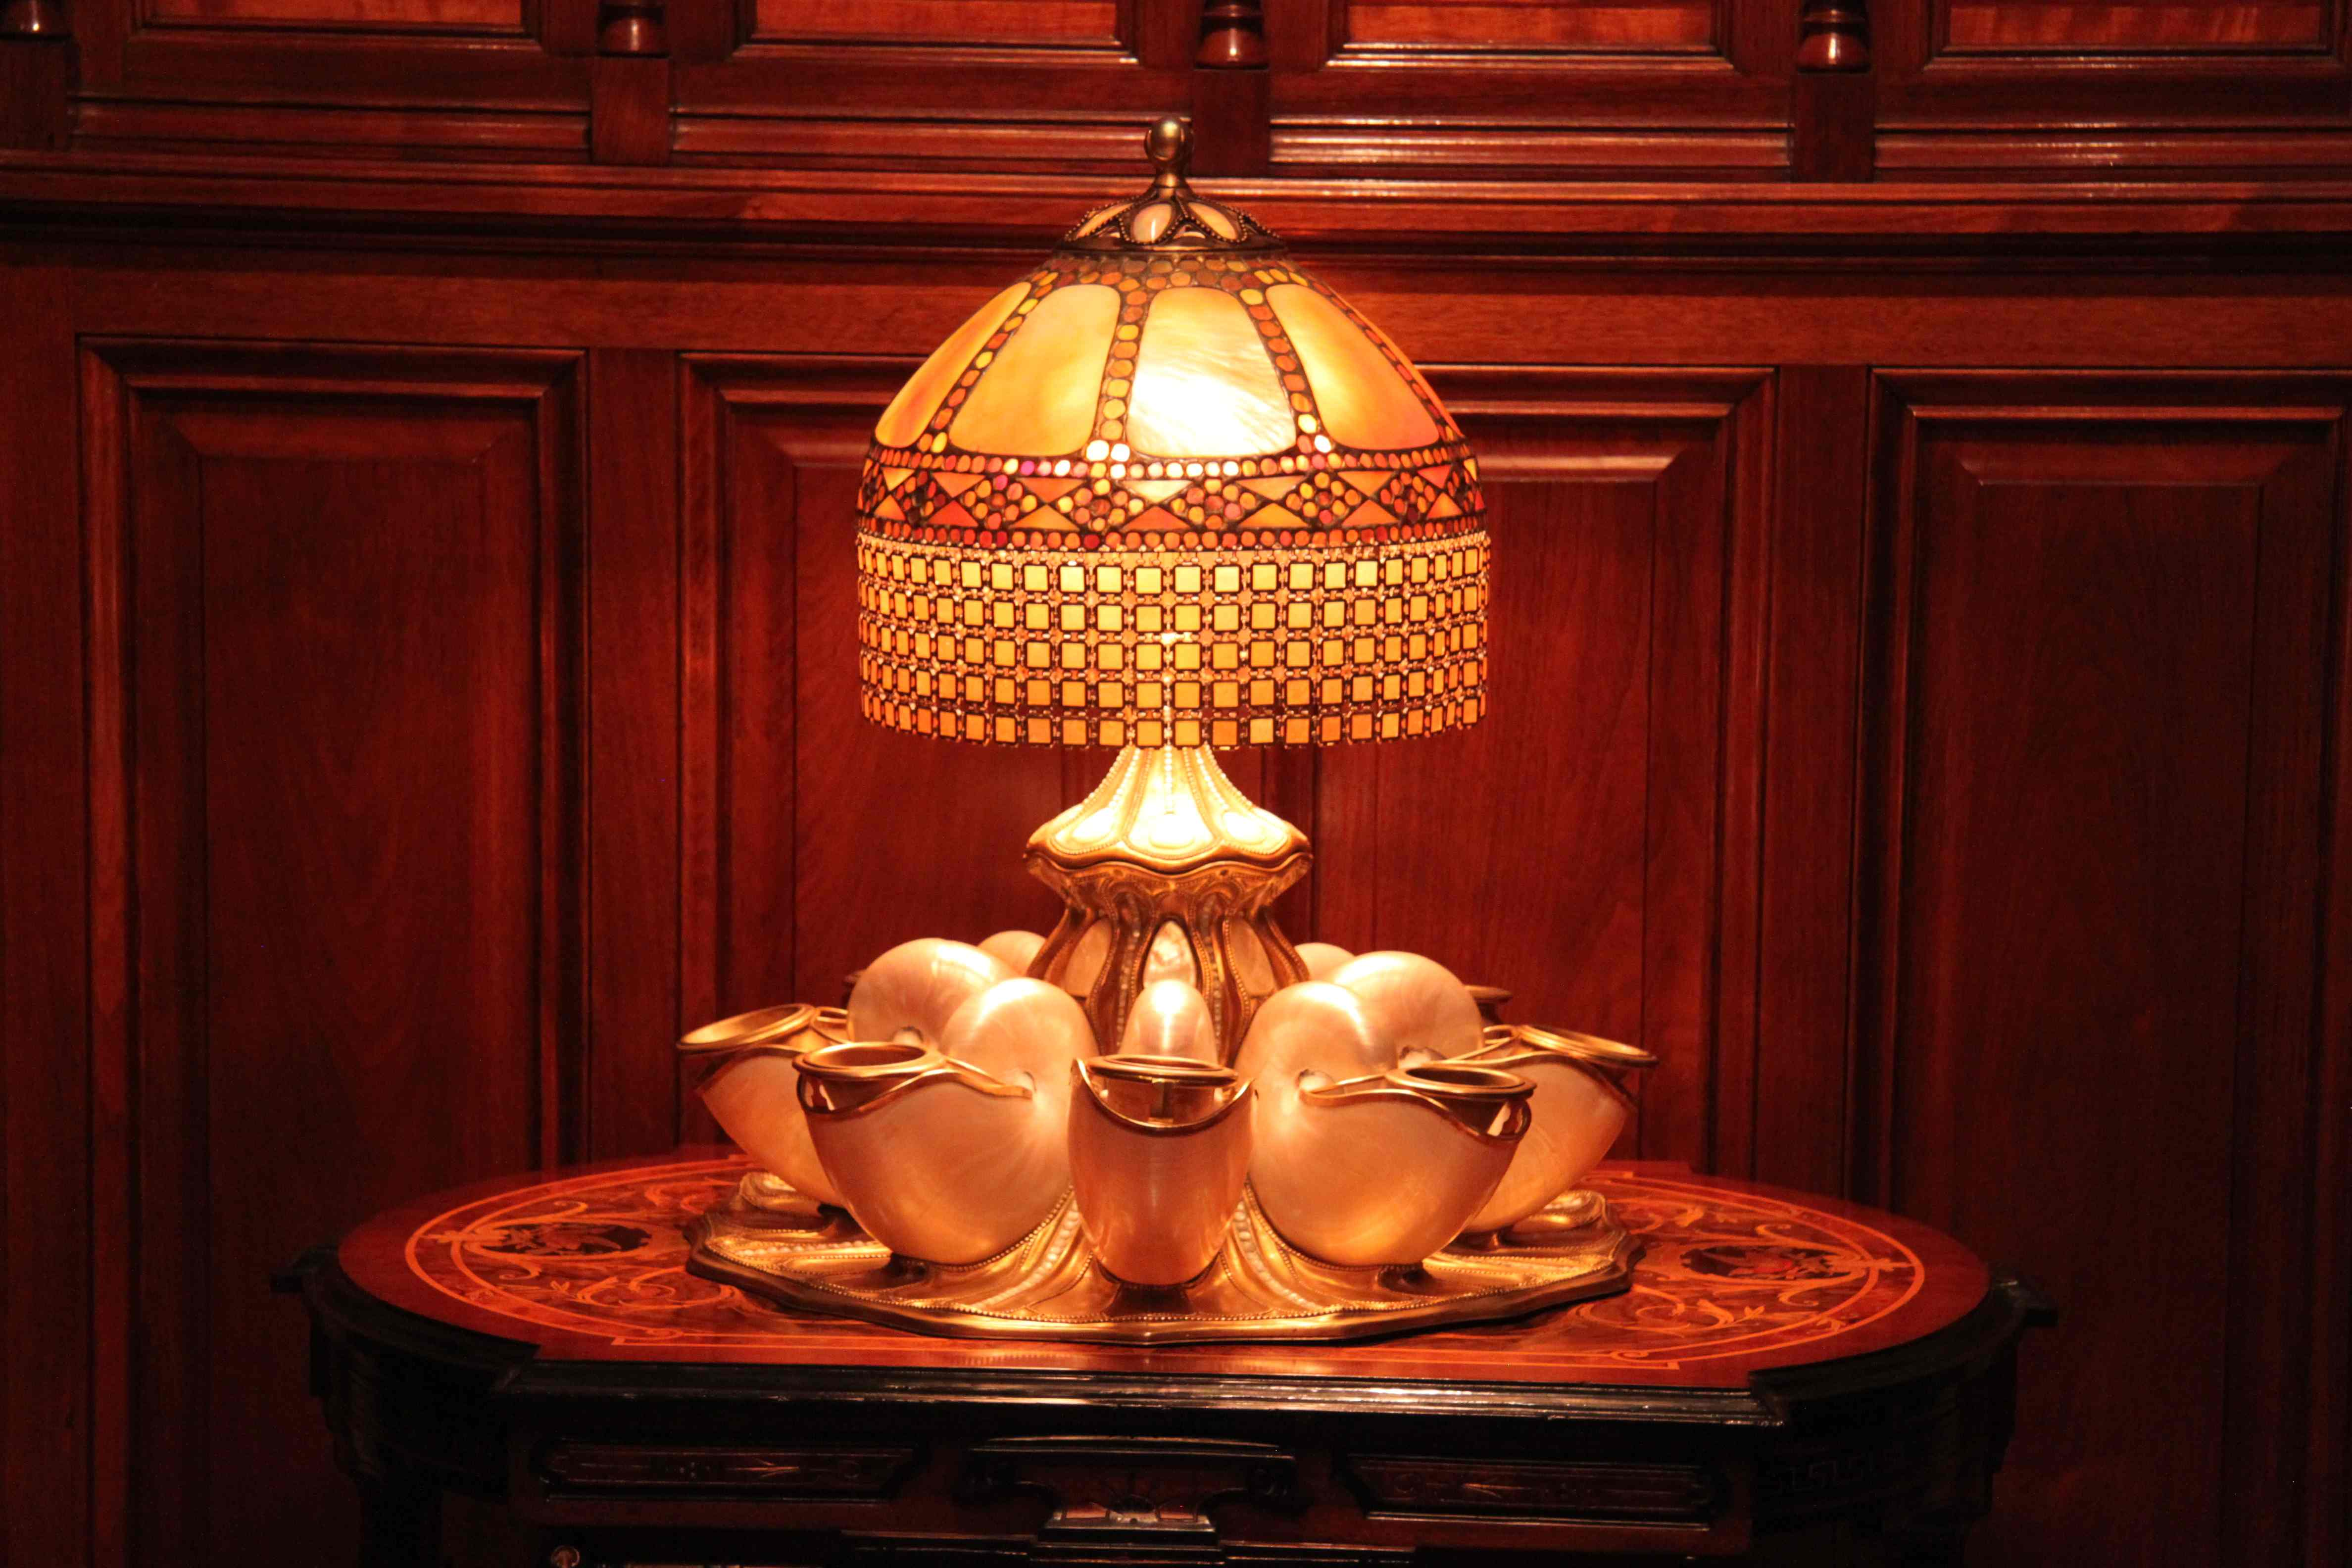 de resistance mr driehaus s tiffany lamp with real nautilus shells. Black Bedroom Furniture Sets. Home Design Ideas